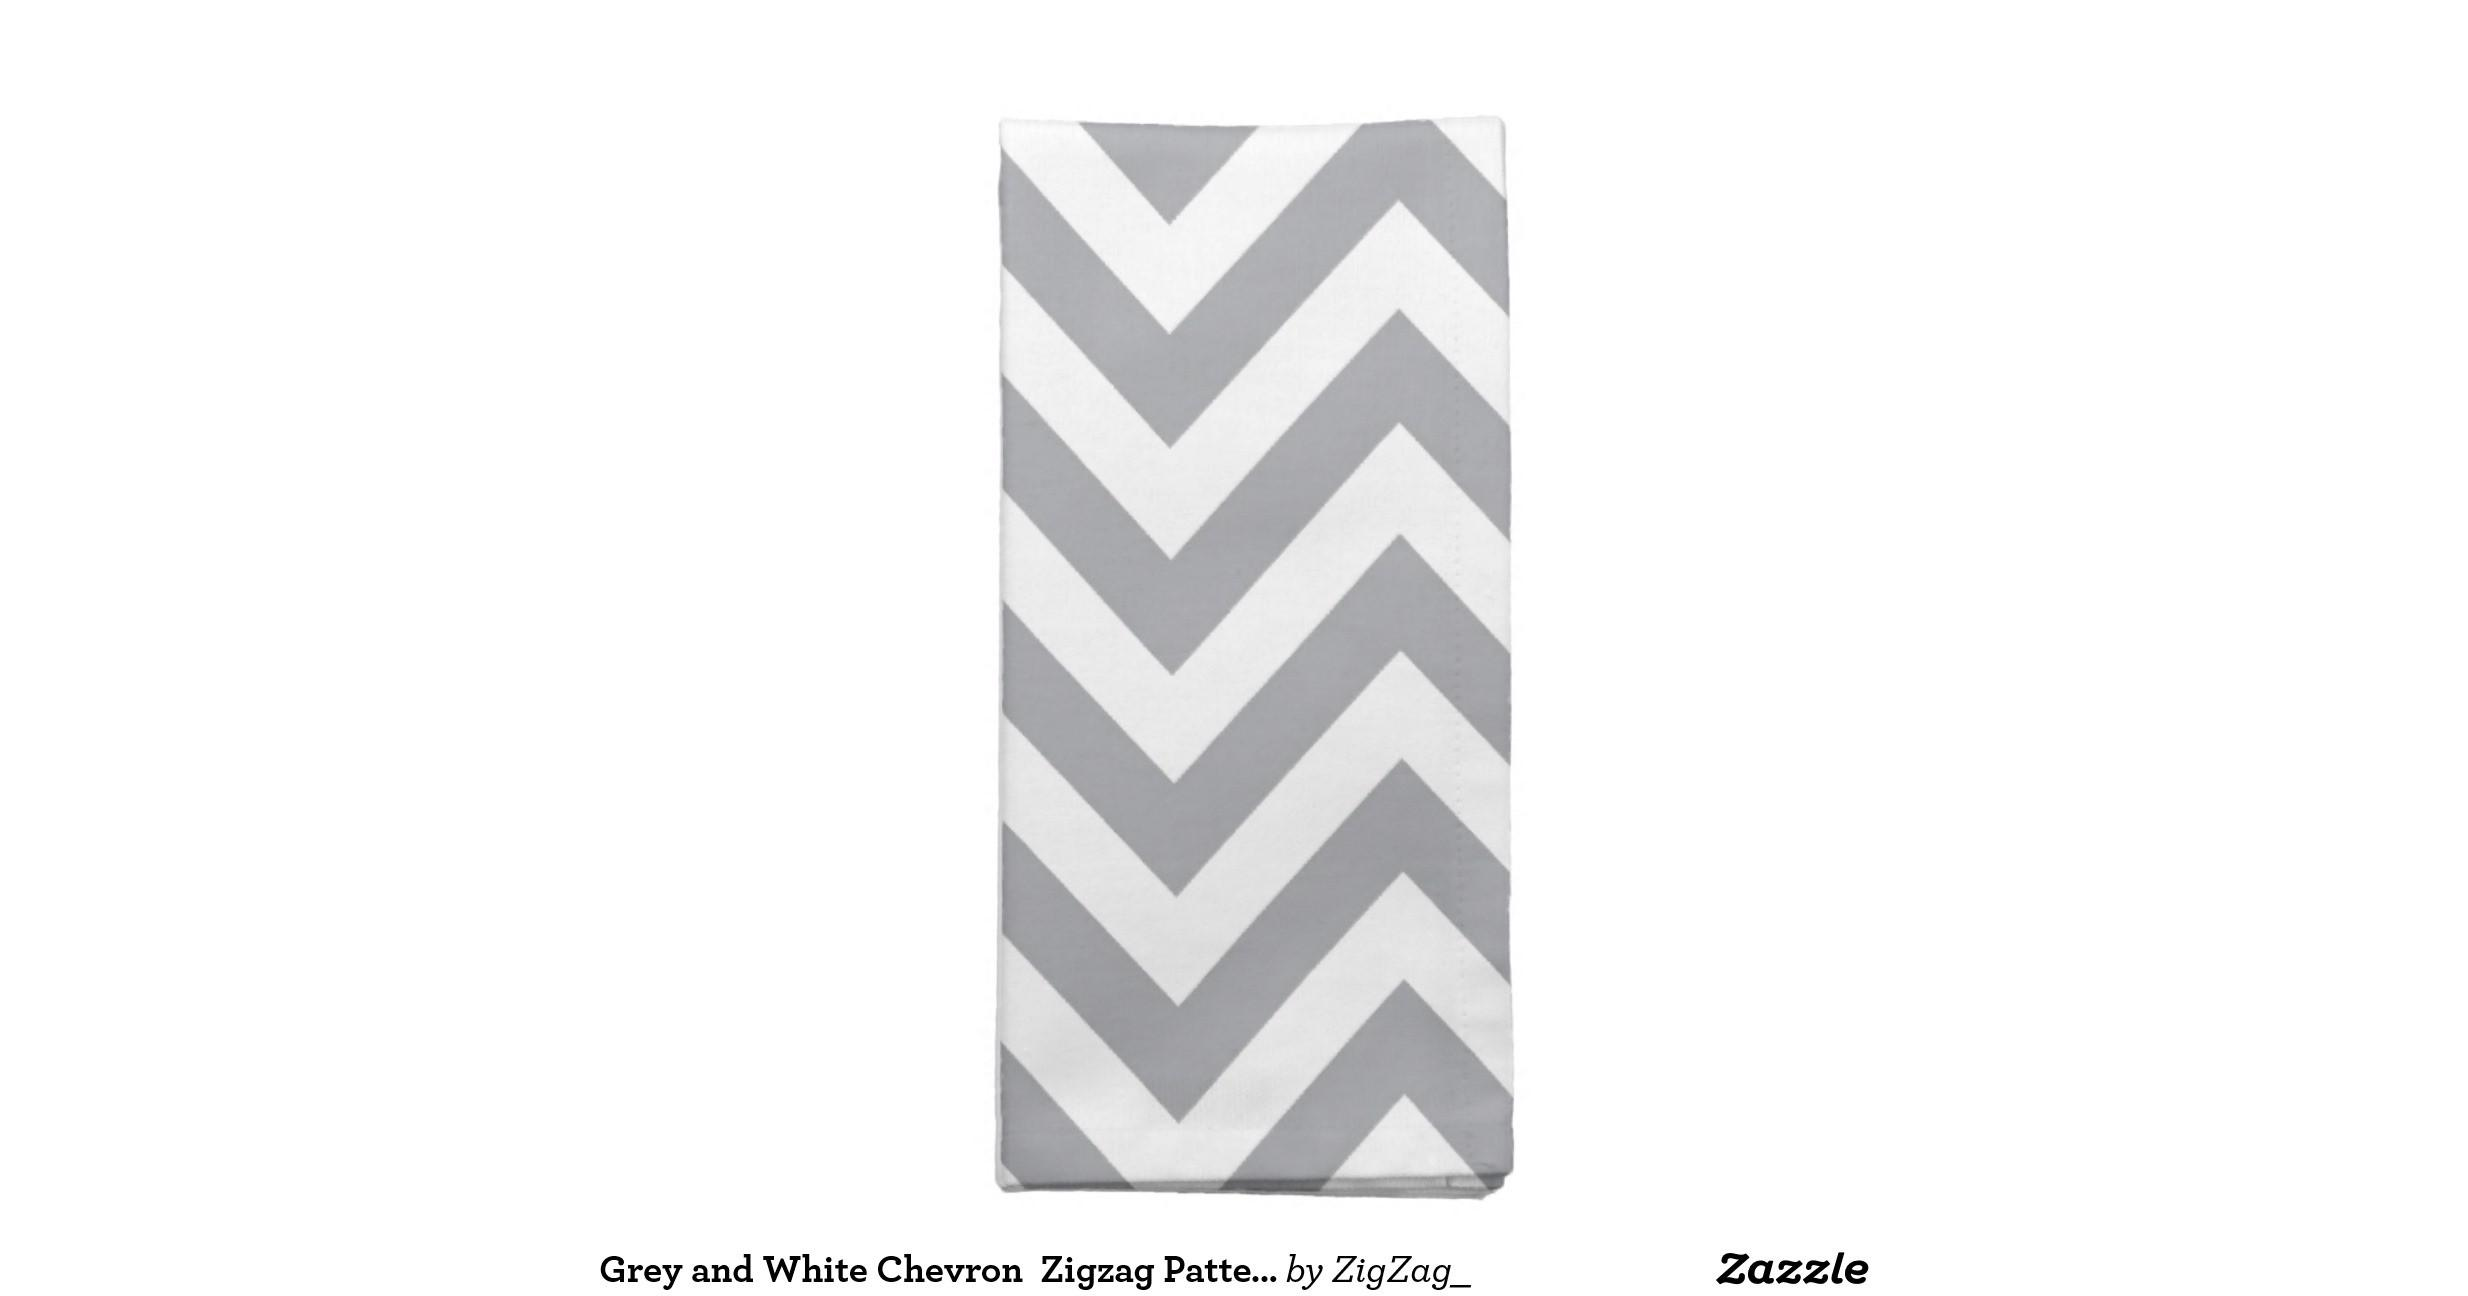 Grey White Chevron Zigzag Pattern Printed Napkin Zazzle